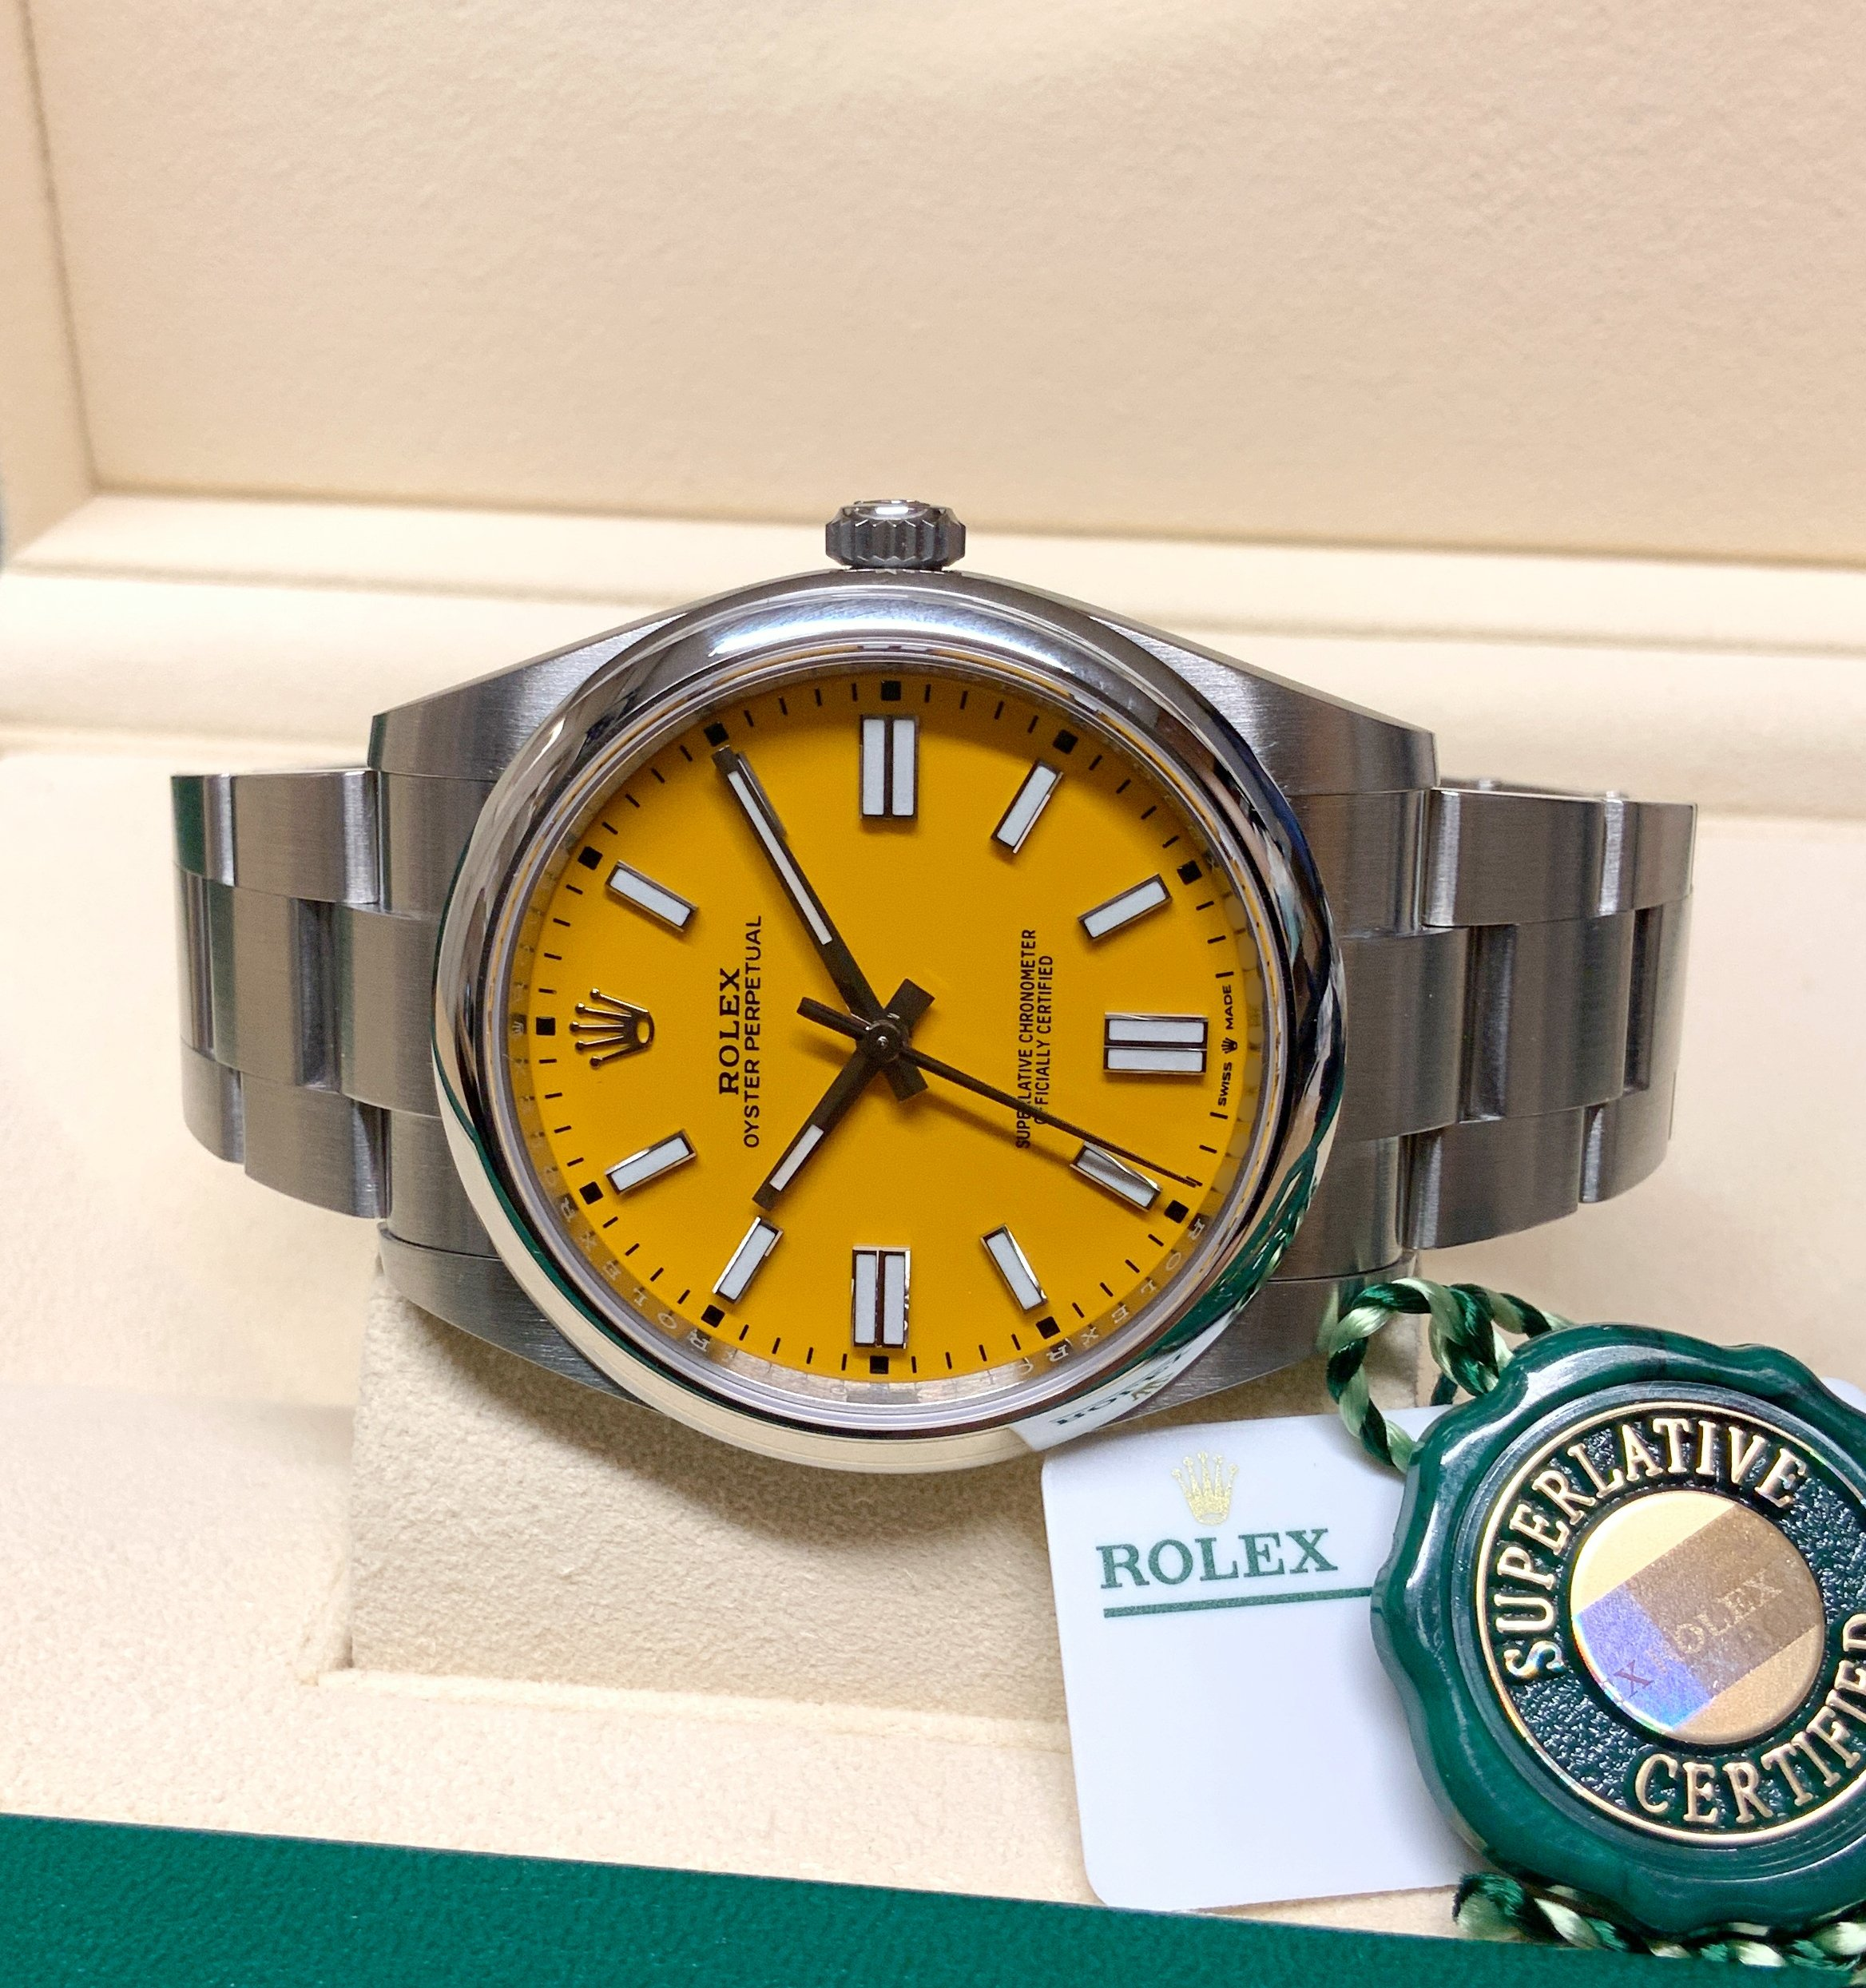 Rolex replica oyster perpetual 41 124300 yellow dial my2020